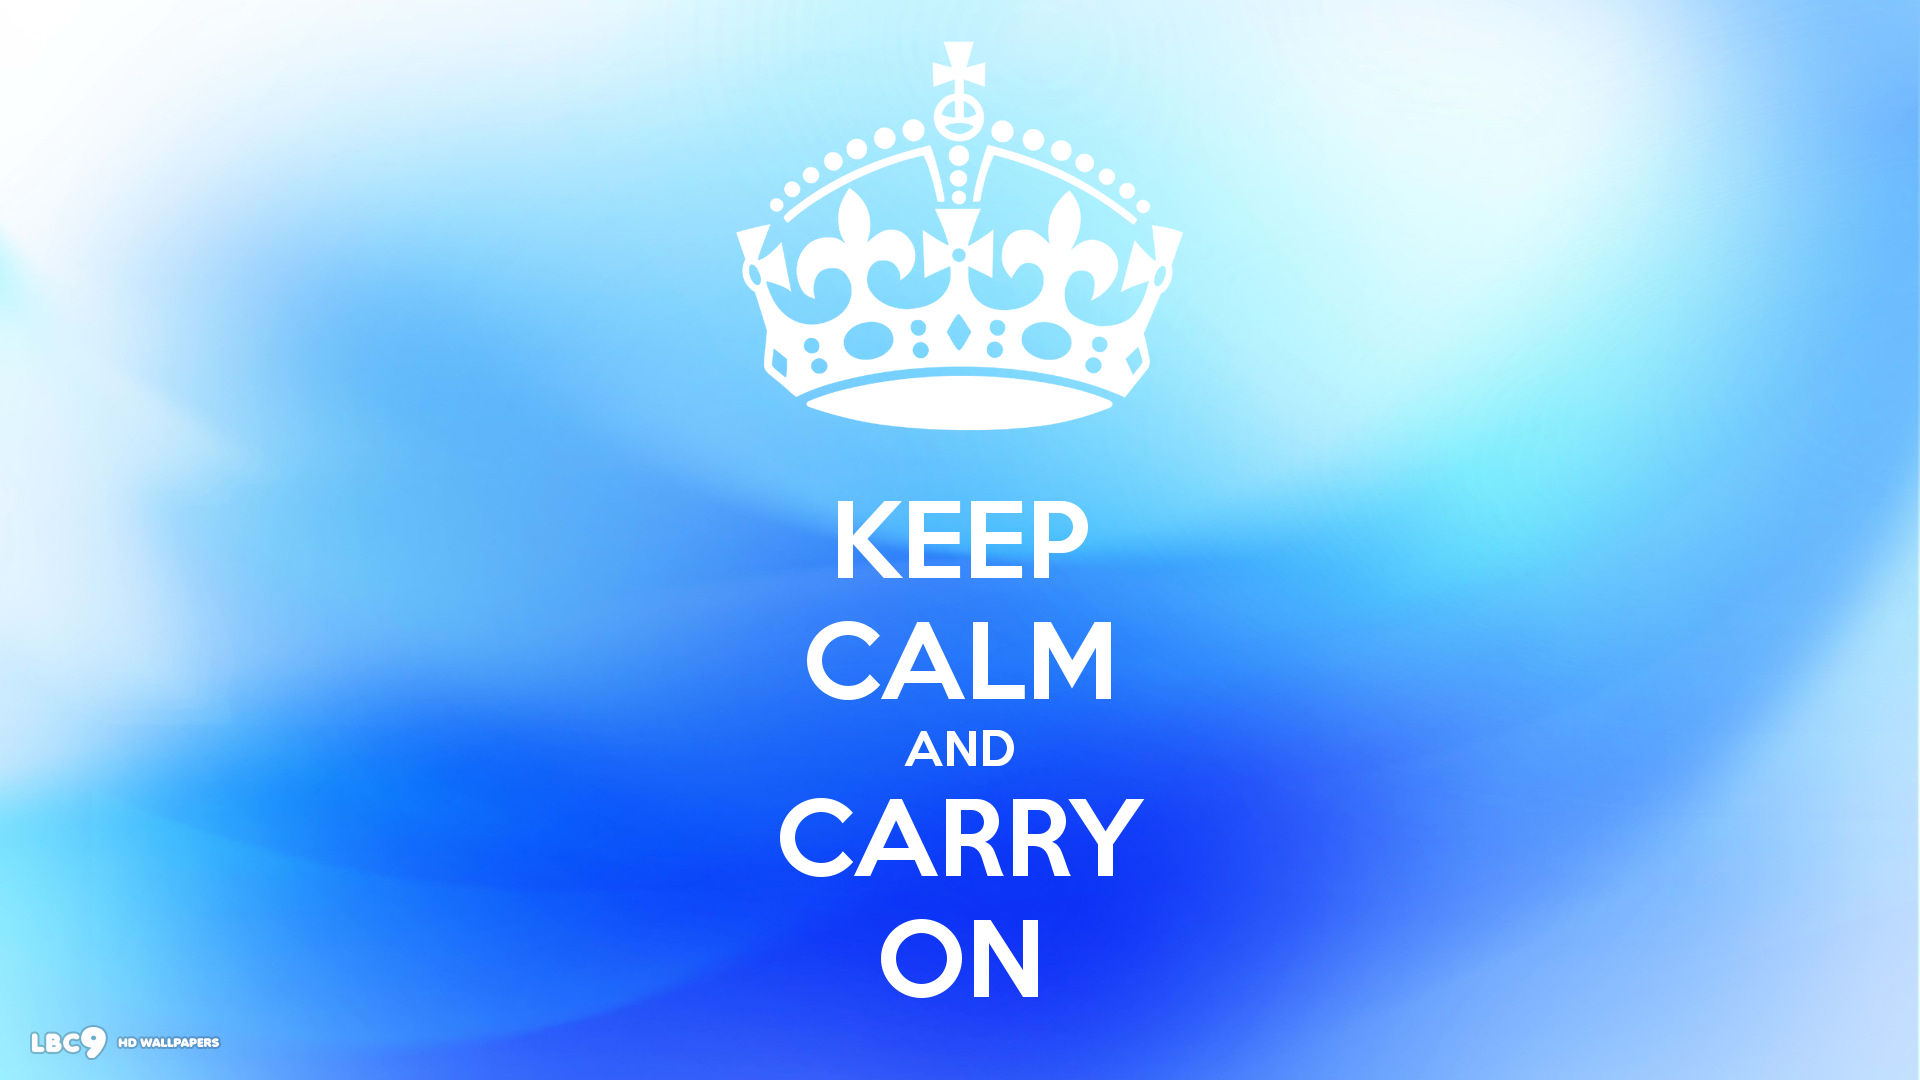 keep calm and carry on 1920 blue abstract background